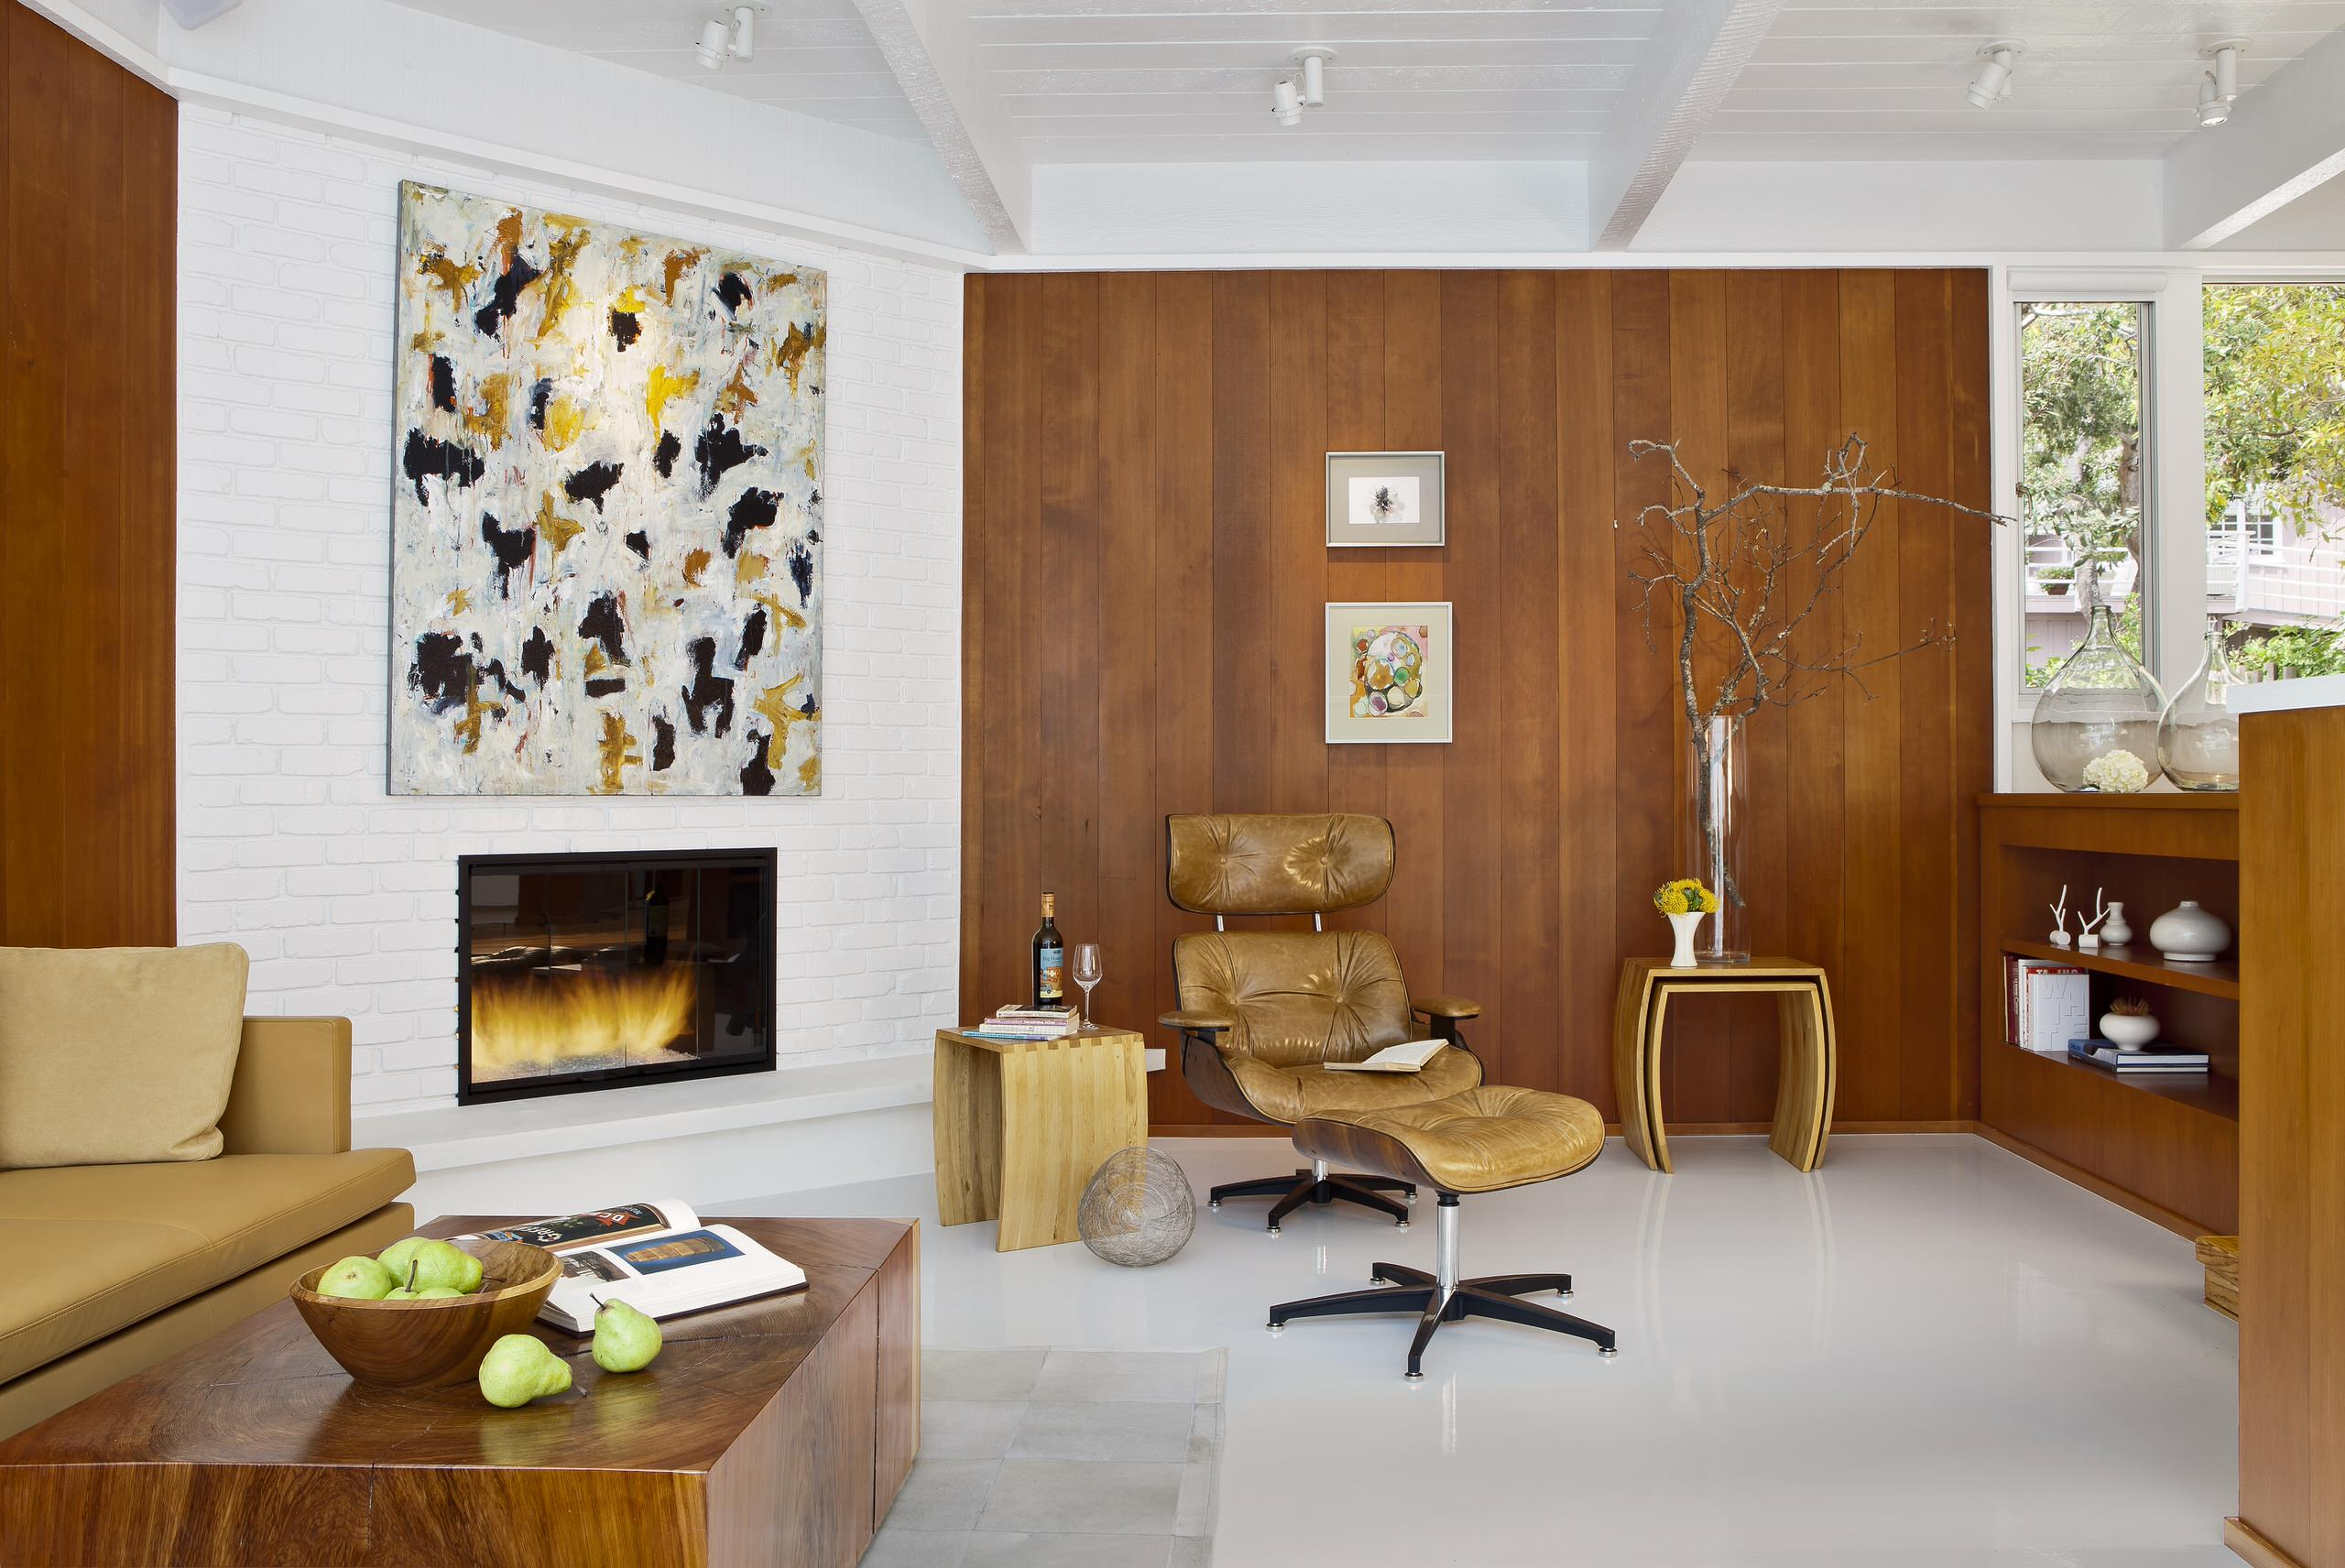 75 Beautiful Mid Century Modern Living Room Pictures Ideas December 2020 Houzz